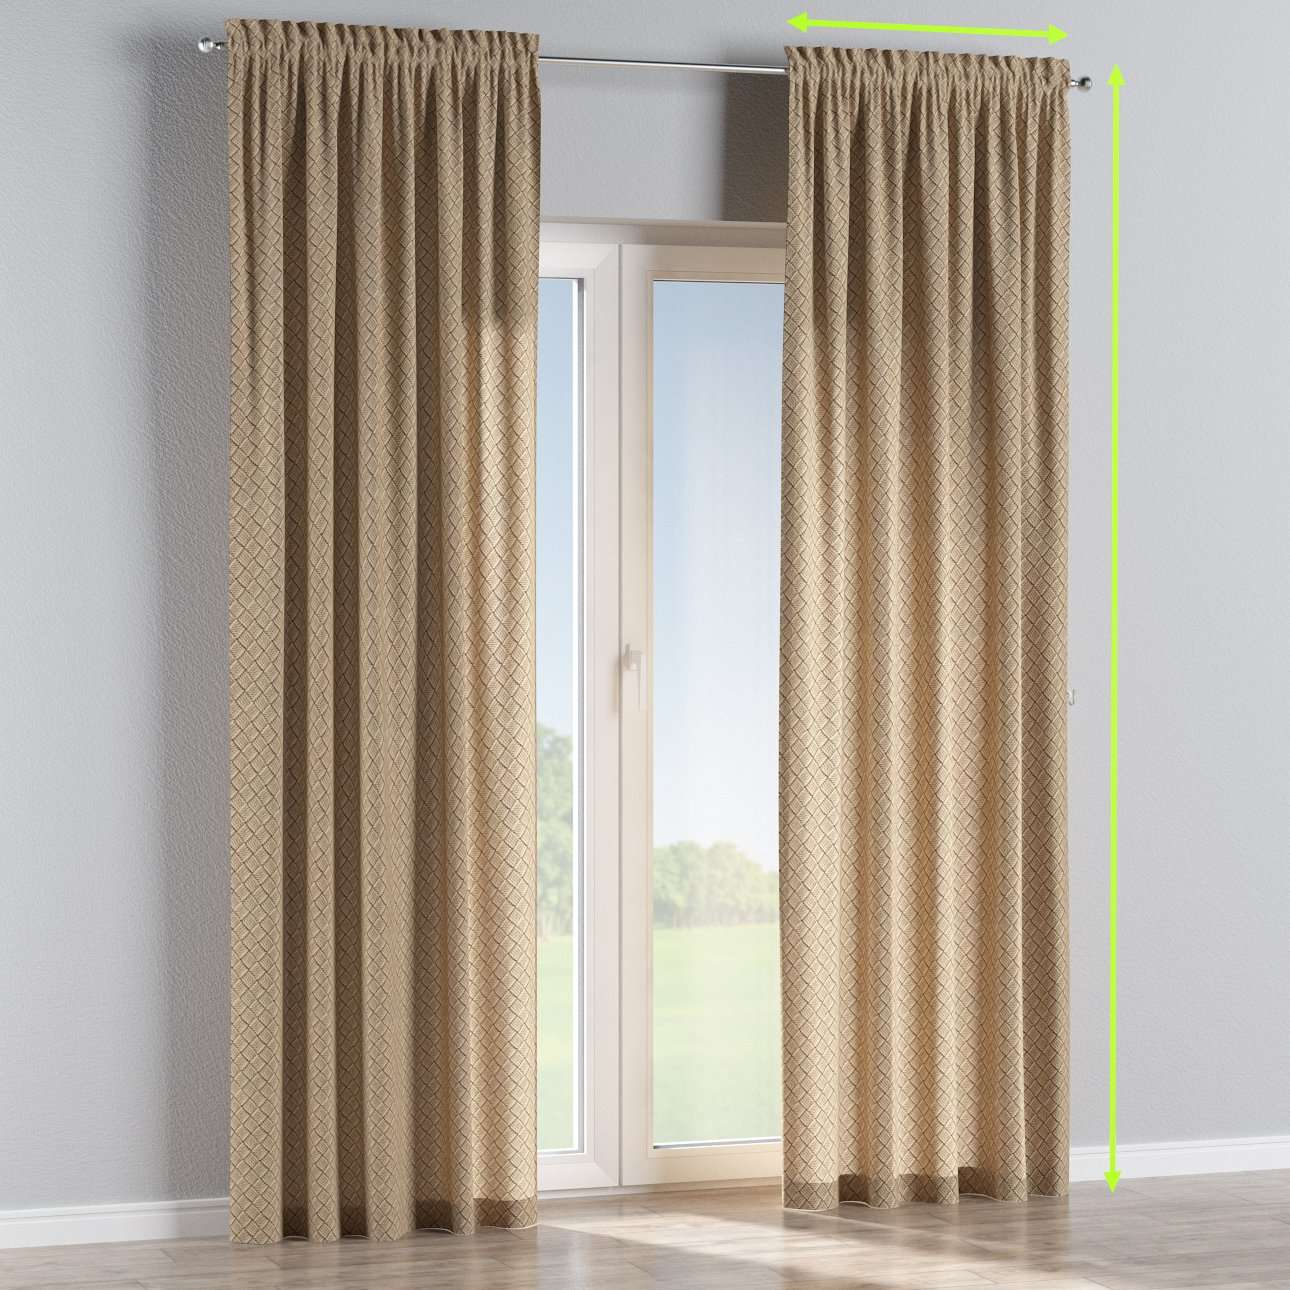 Slot and frill lined curtains in collection Marina, fabric: 140-17